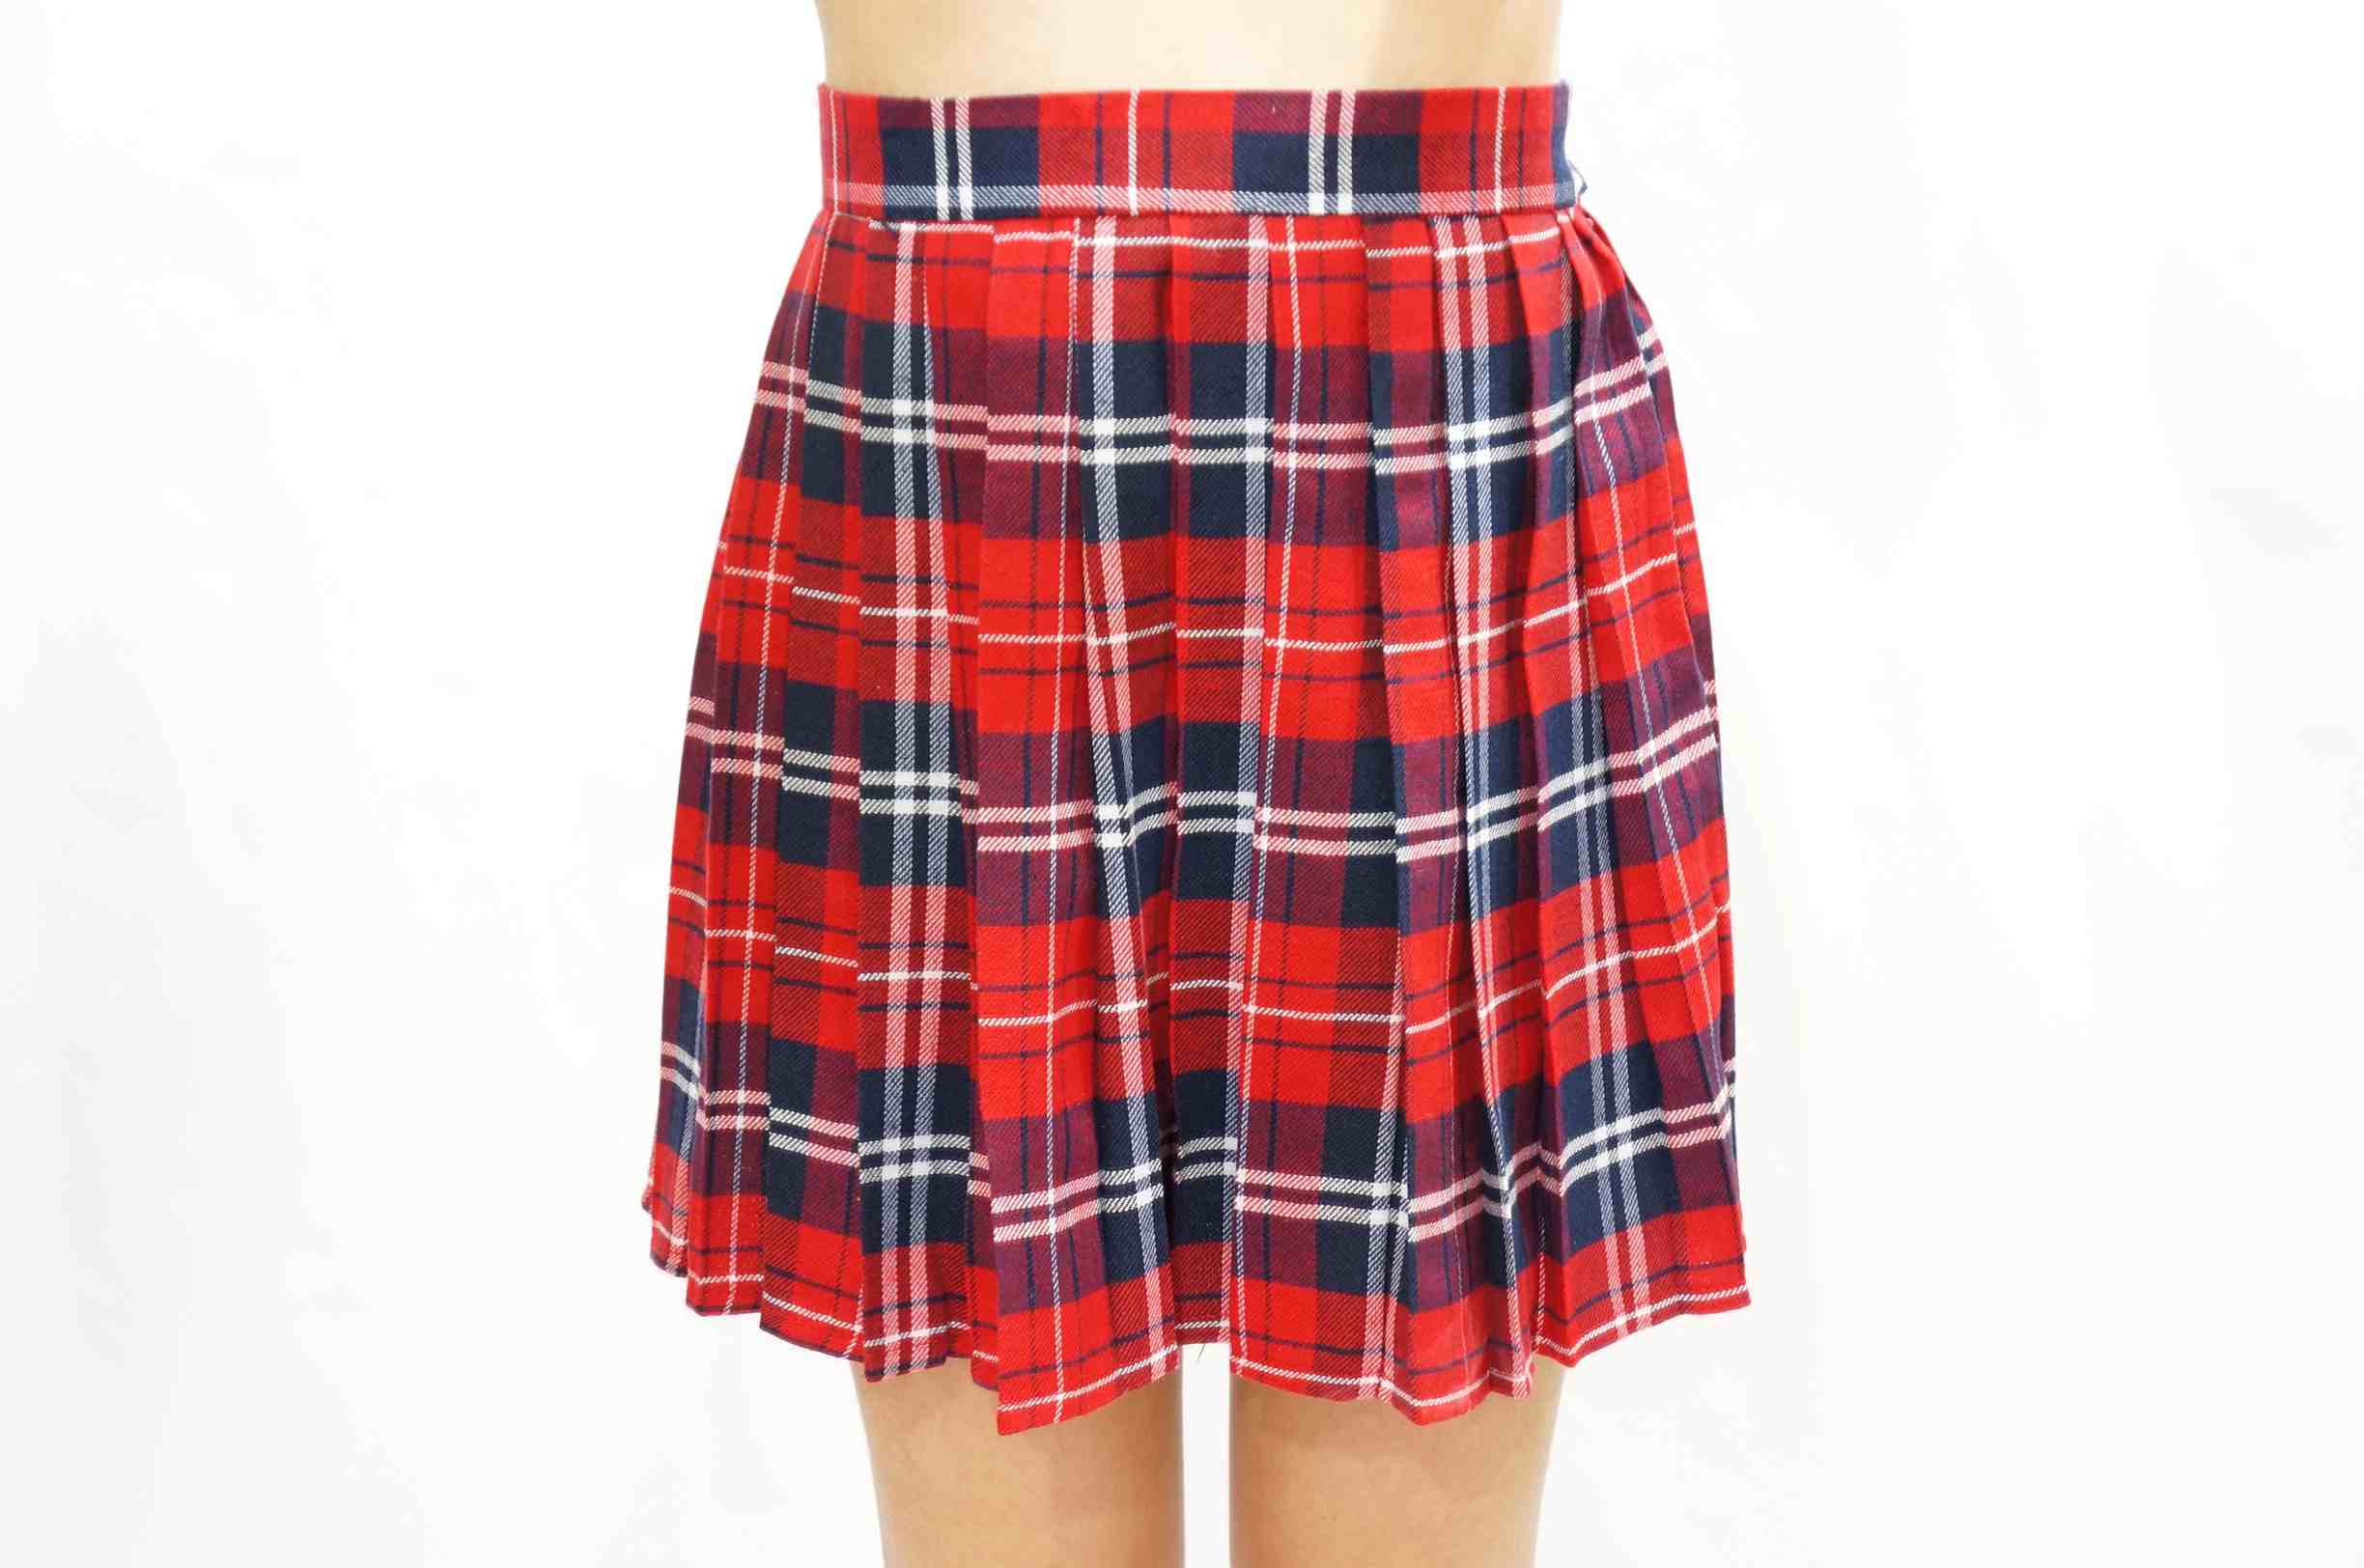 9db73cf24e Red Plaid Skater Skirt - XL · Sandysshop · Online Store Powered by ...